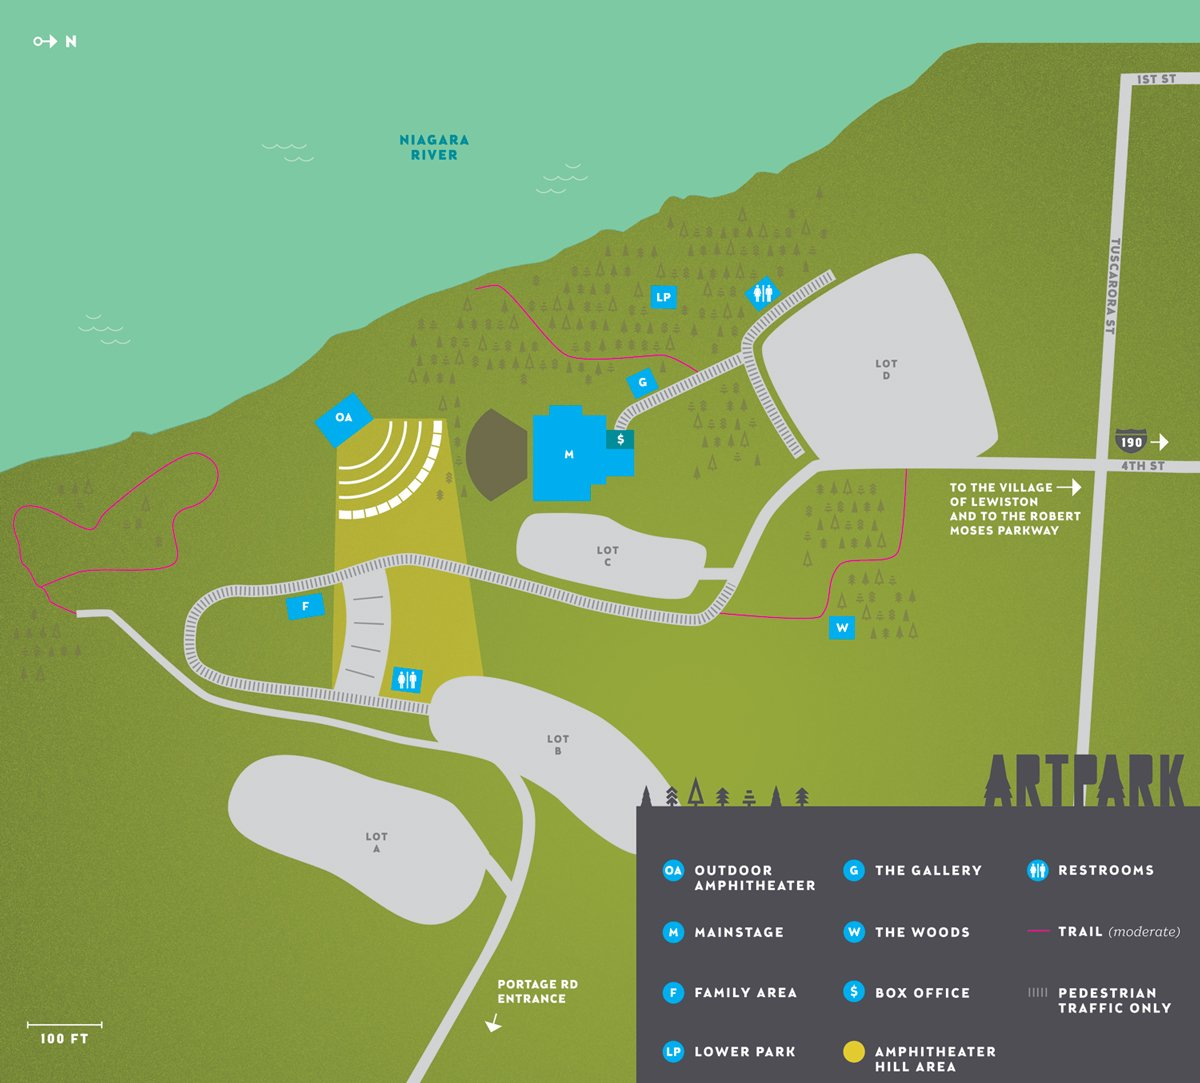 Artpark venue info park map western new york s premier